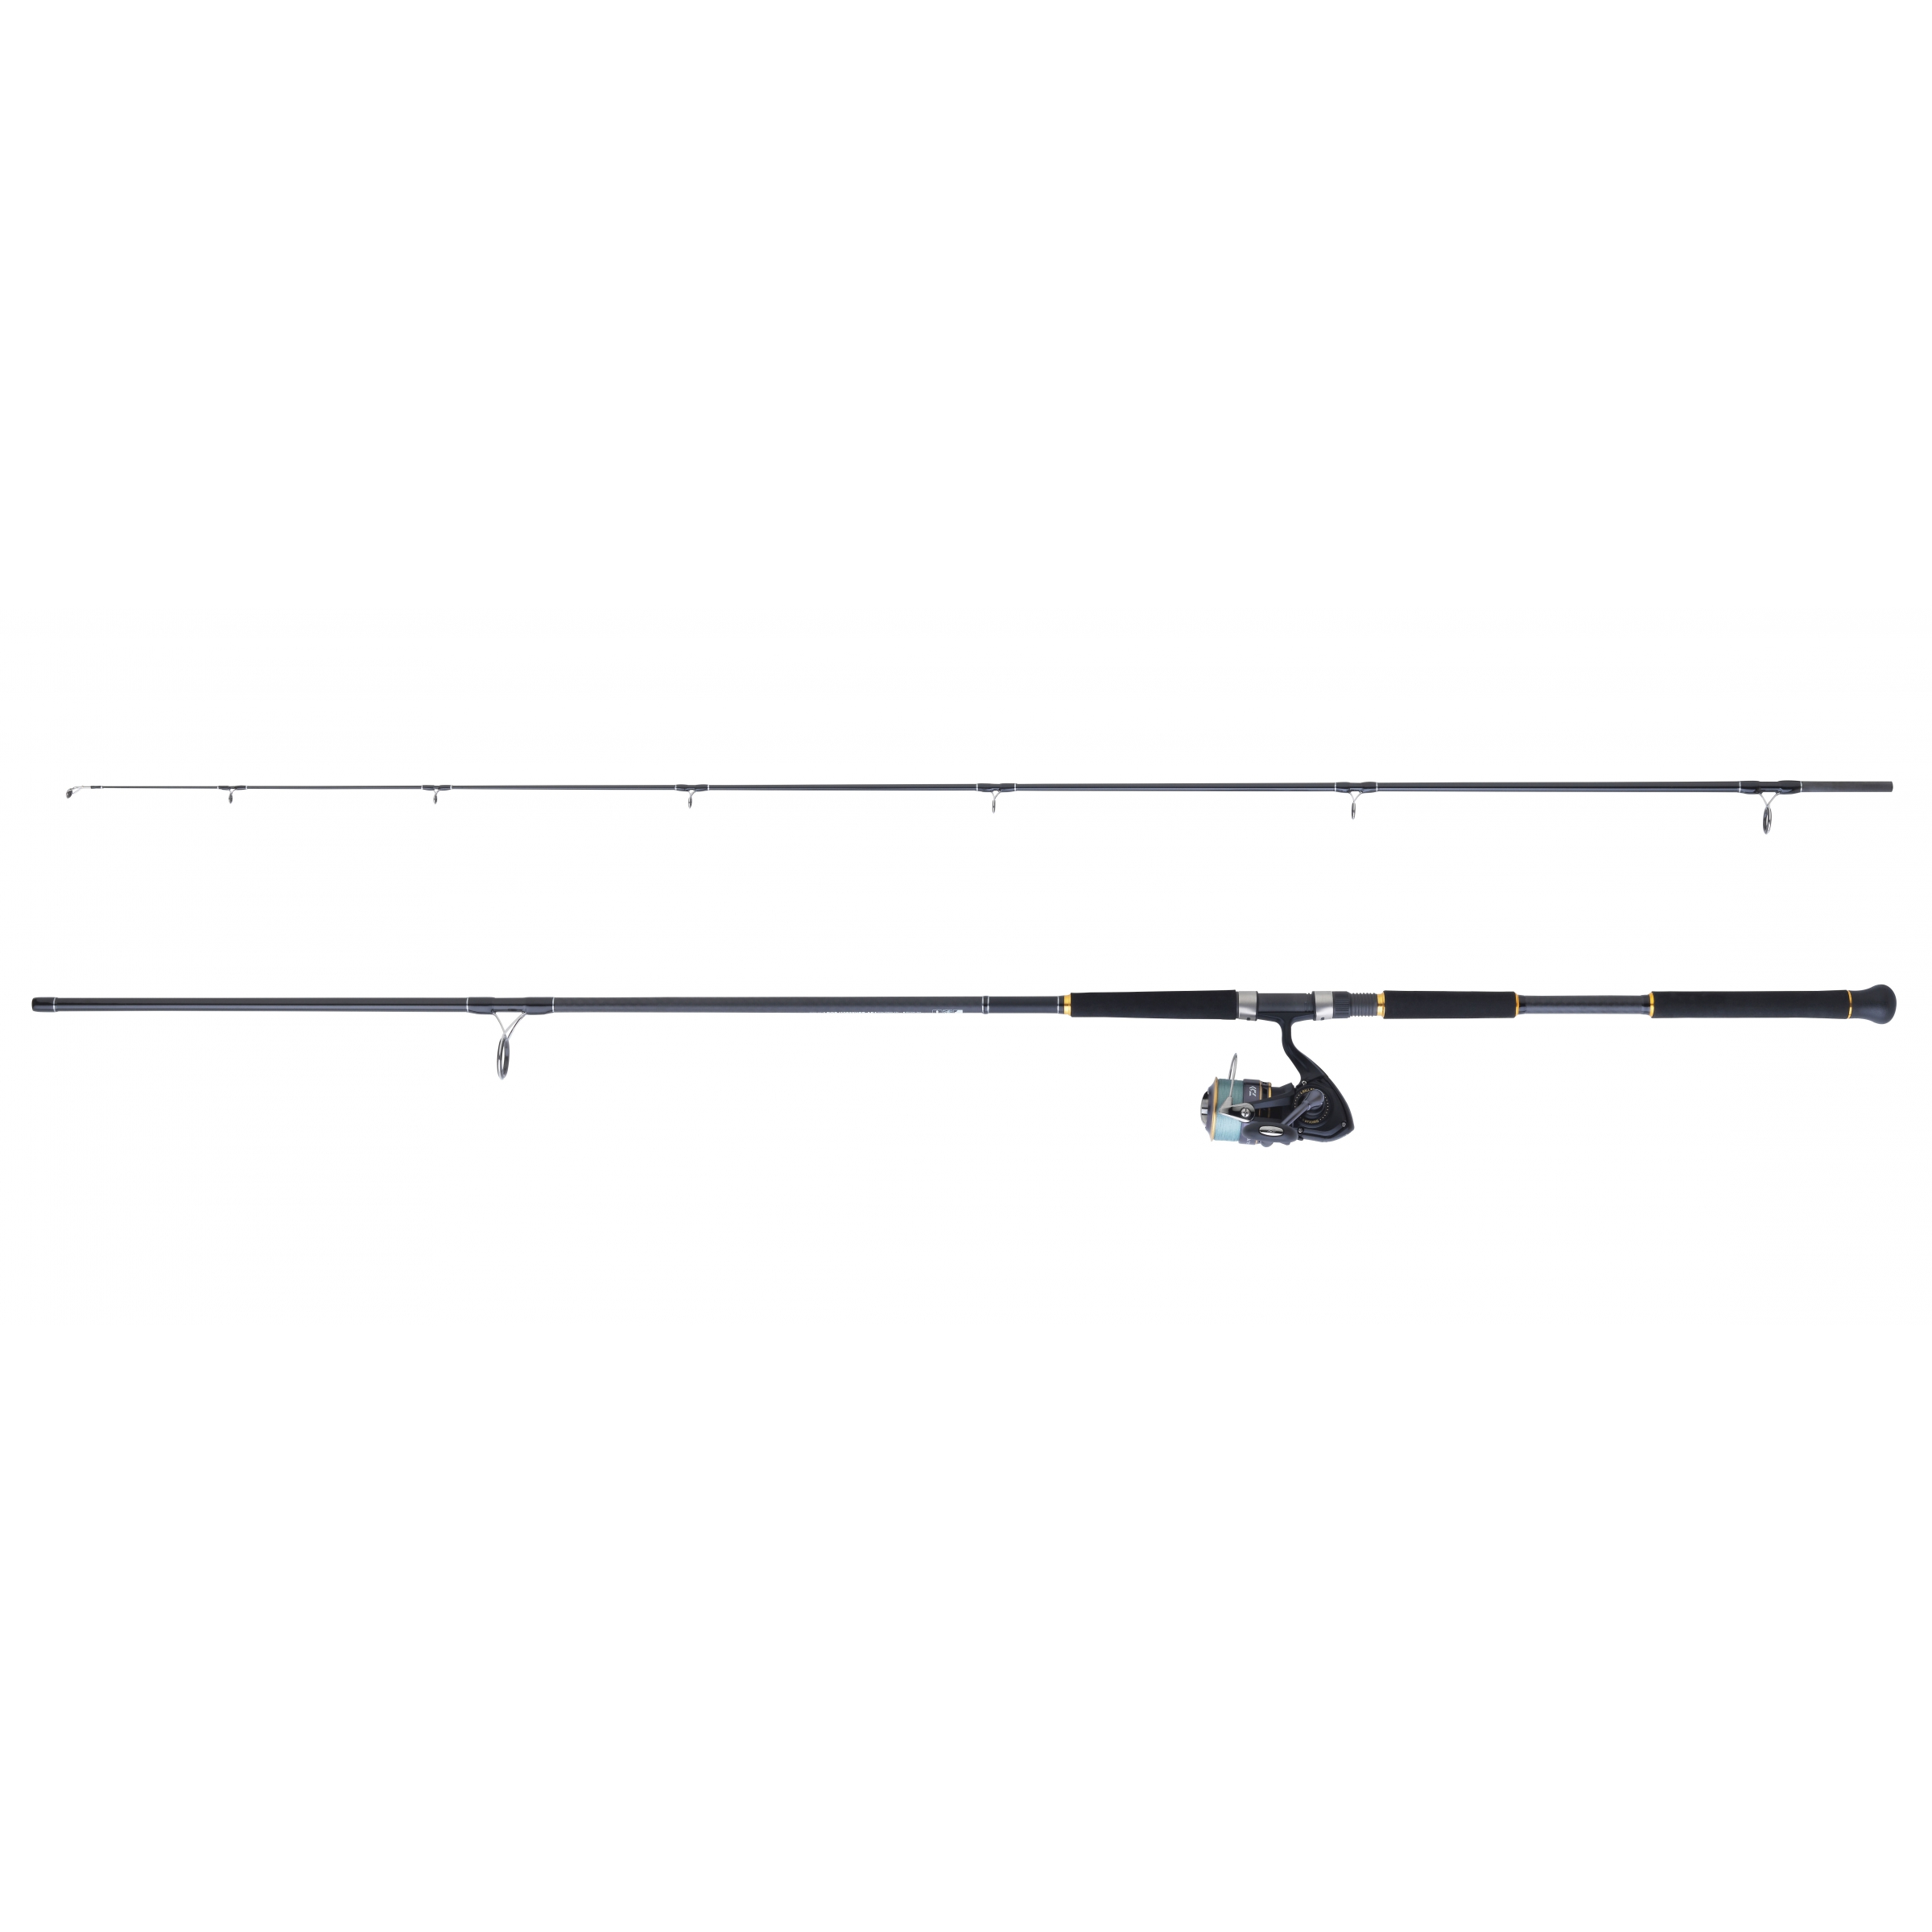 Ensemble lancer spinning DAIWA LEGALIS SHORE JIGGING + REGAL PE TSUKI + tresse 4 brins